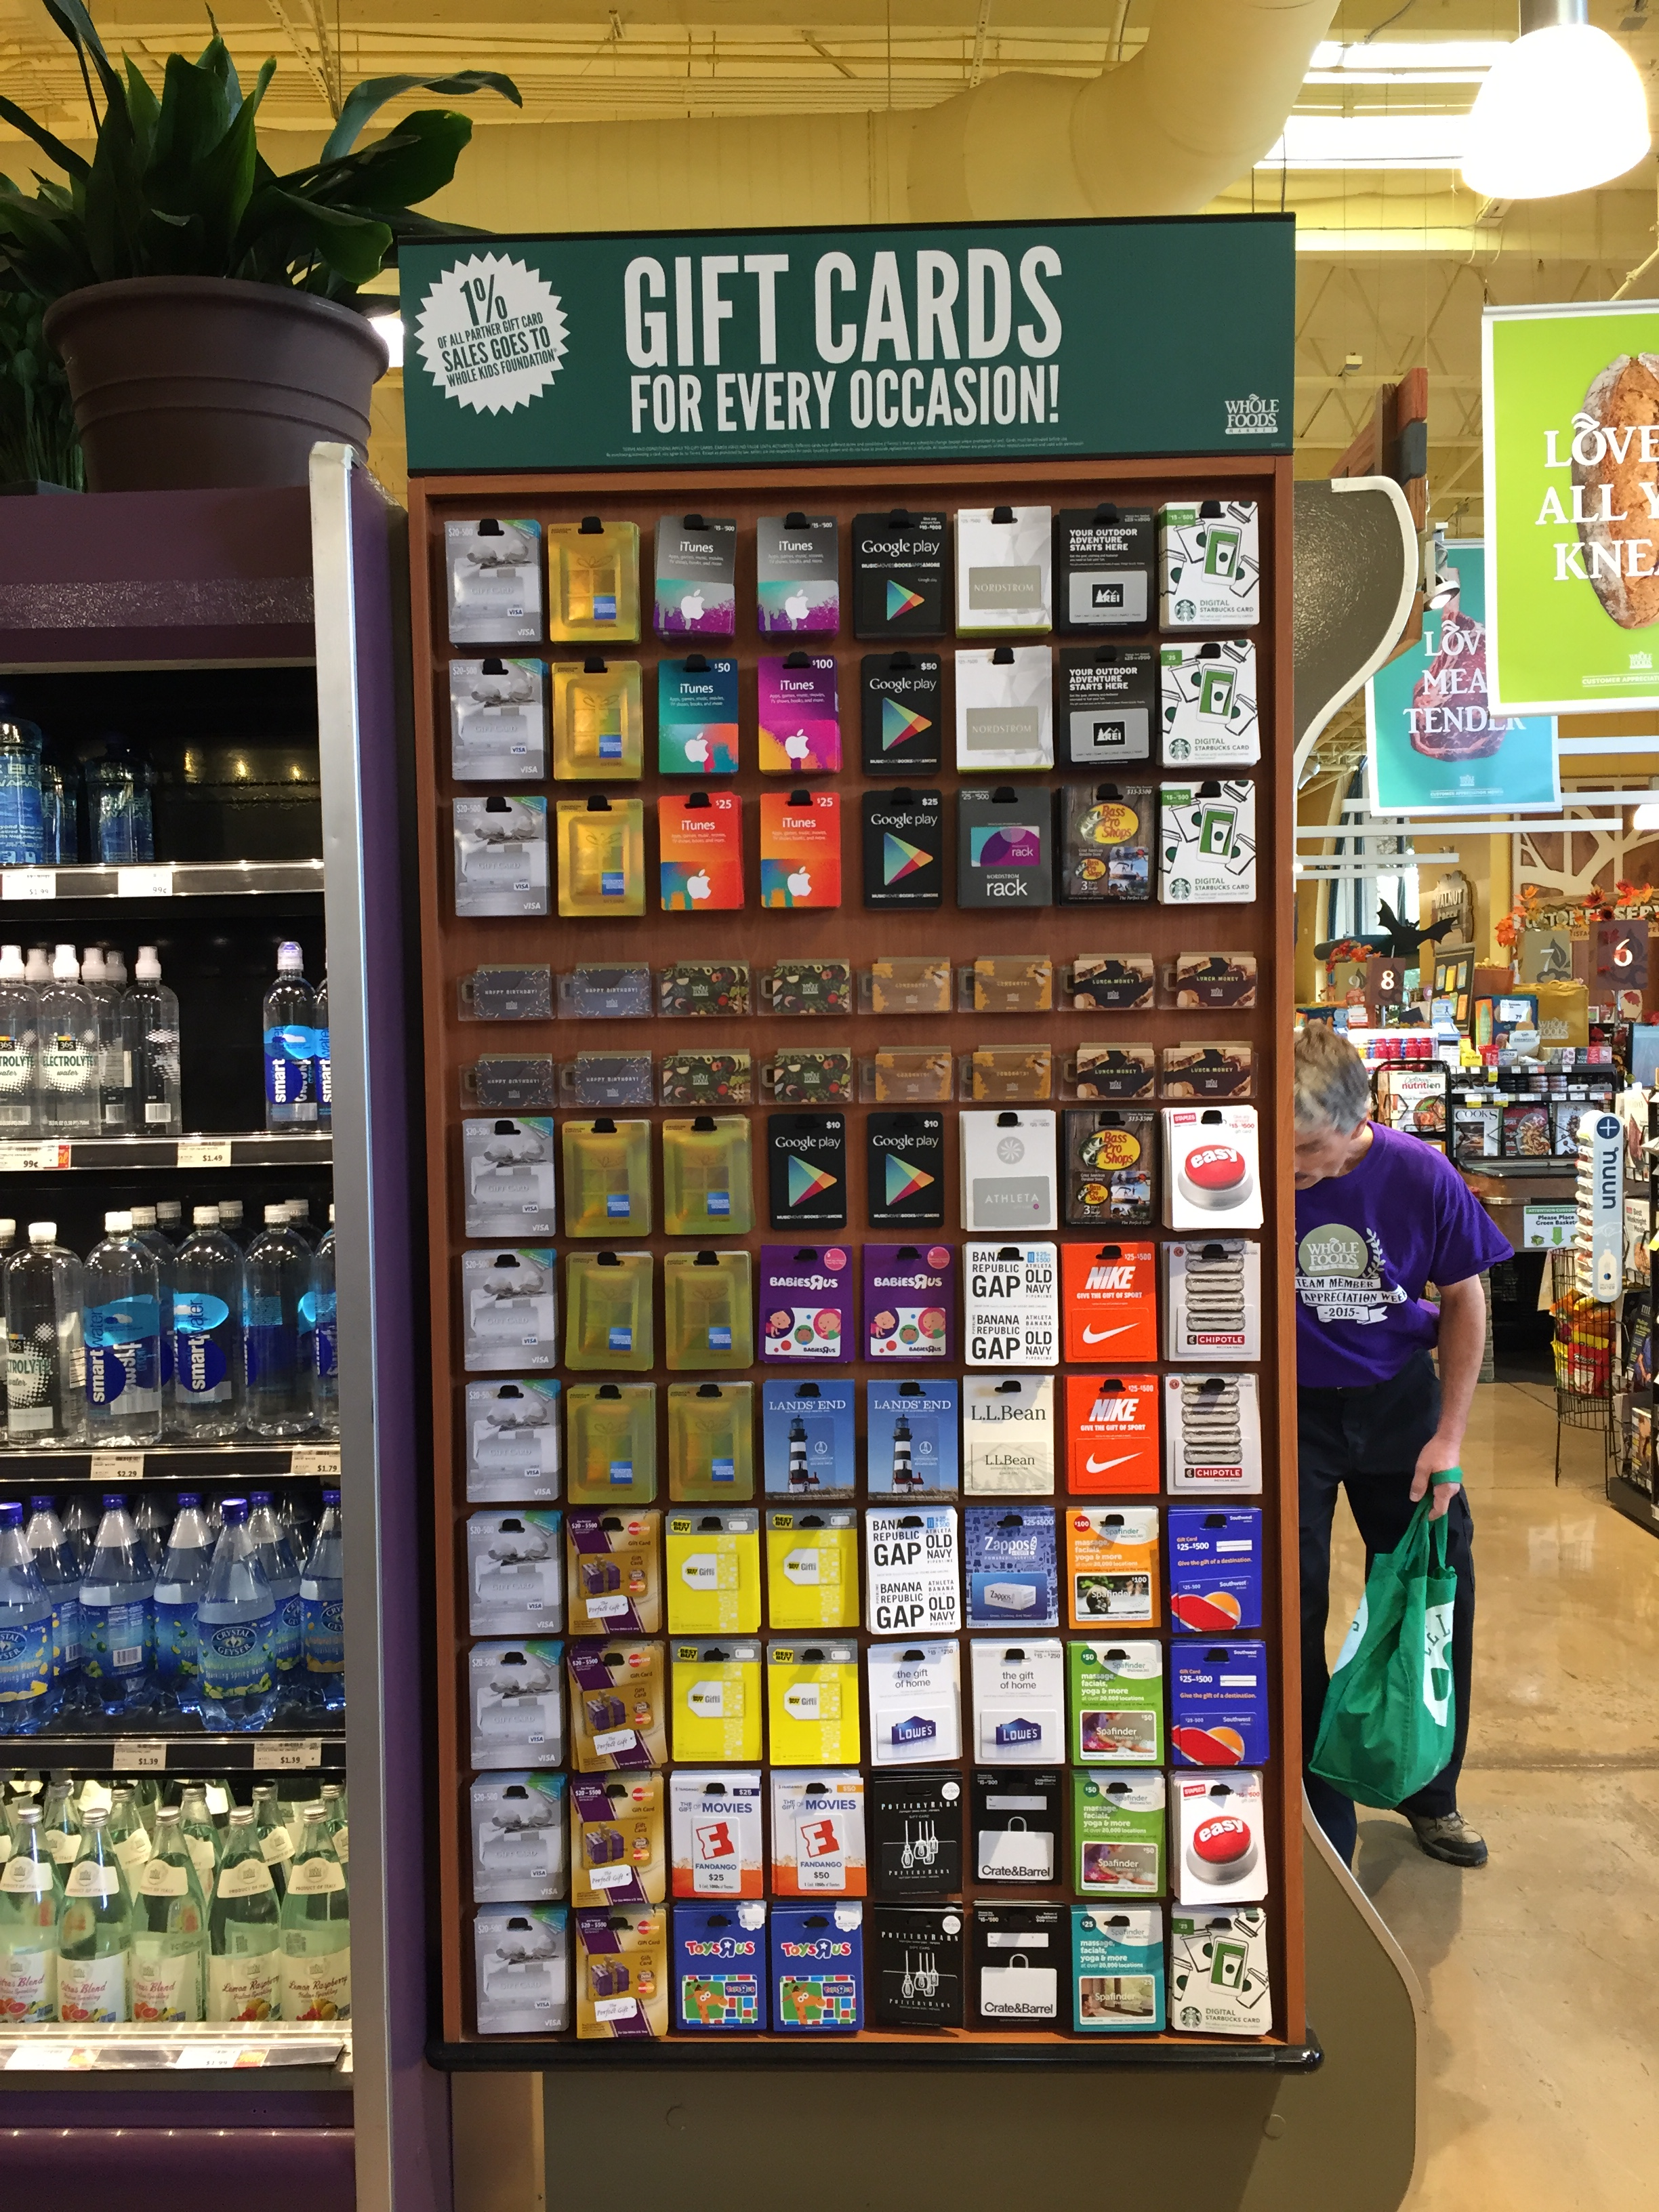 Blackhawk Network Gift Card Sales At Whole Foods Market Generate ...